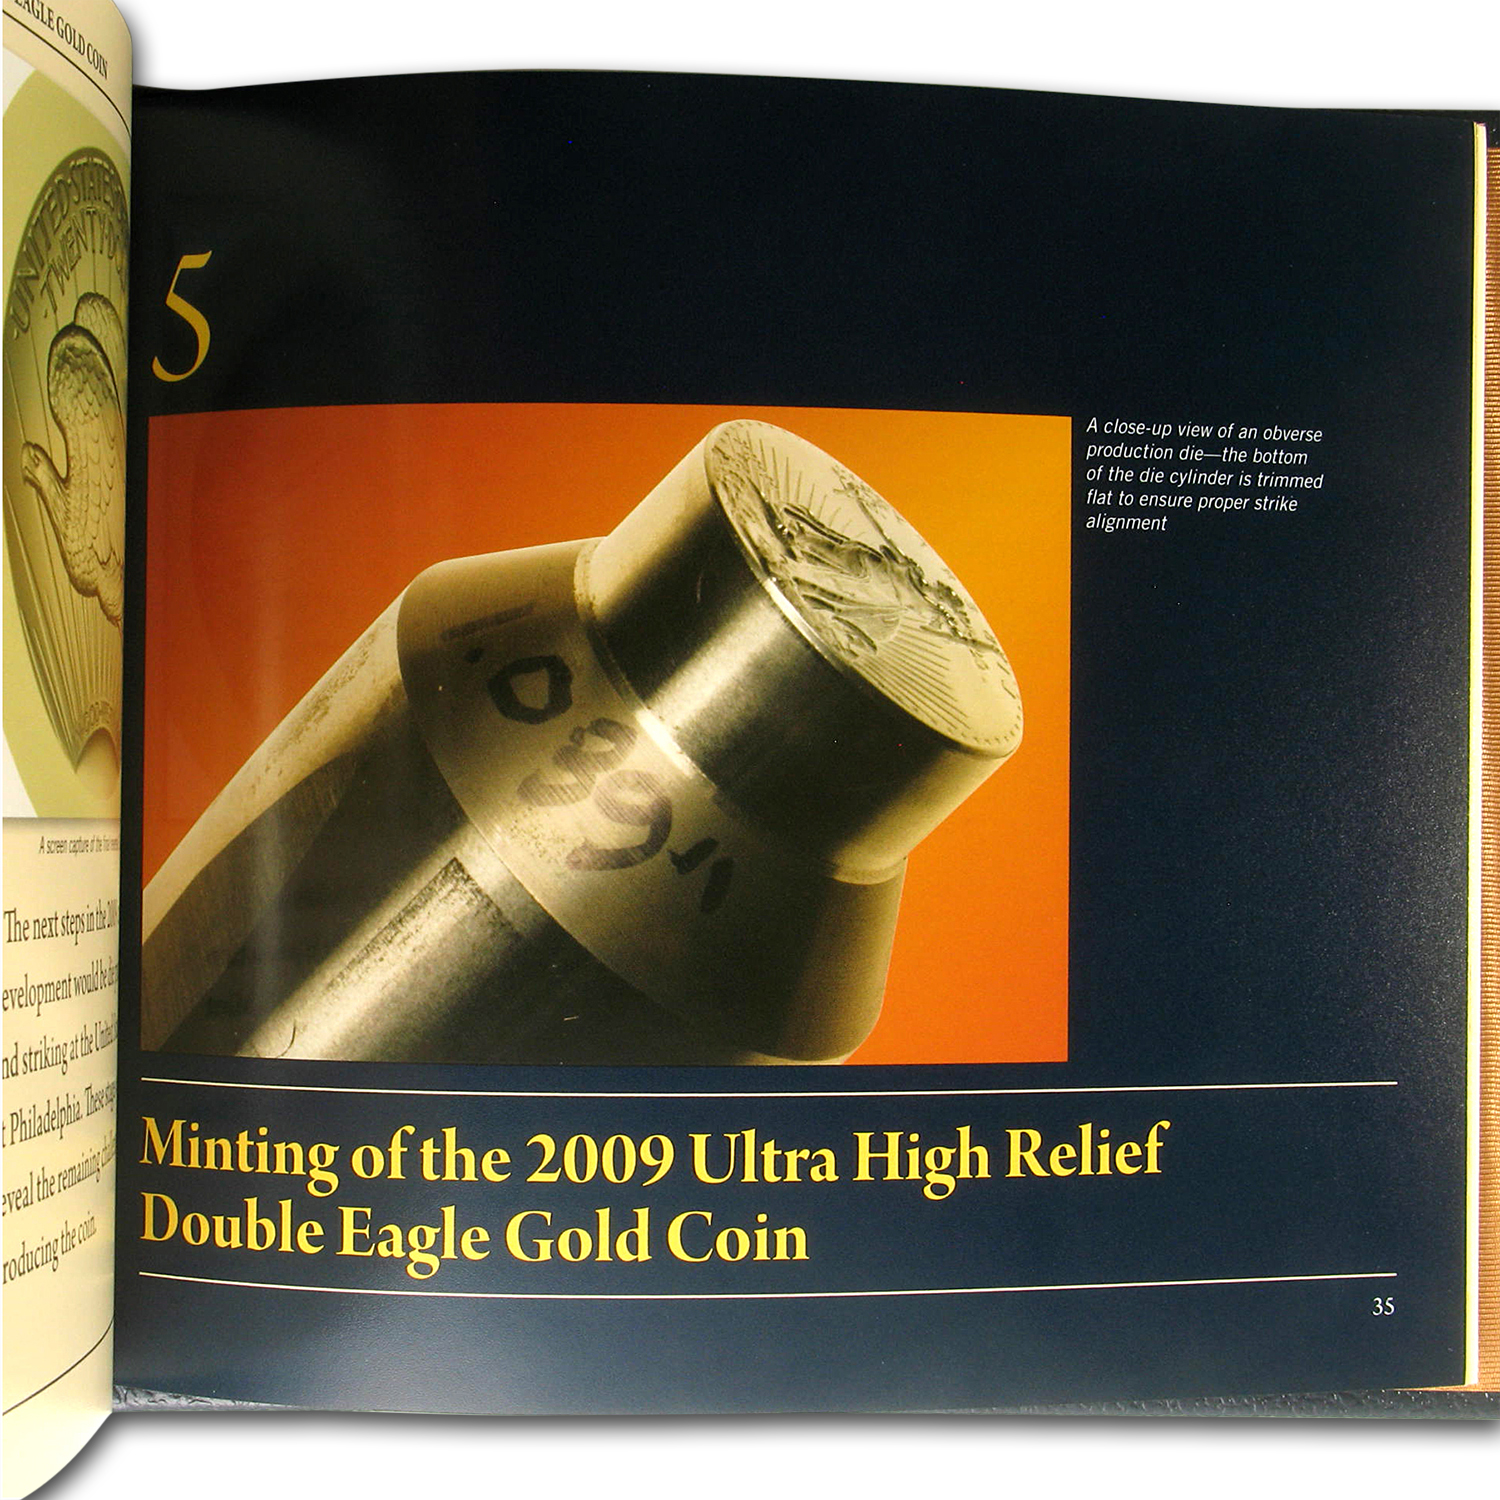 2009 Ultra High Relief Double Eagle Gold Coin Book